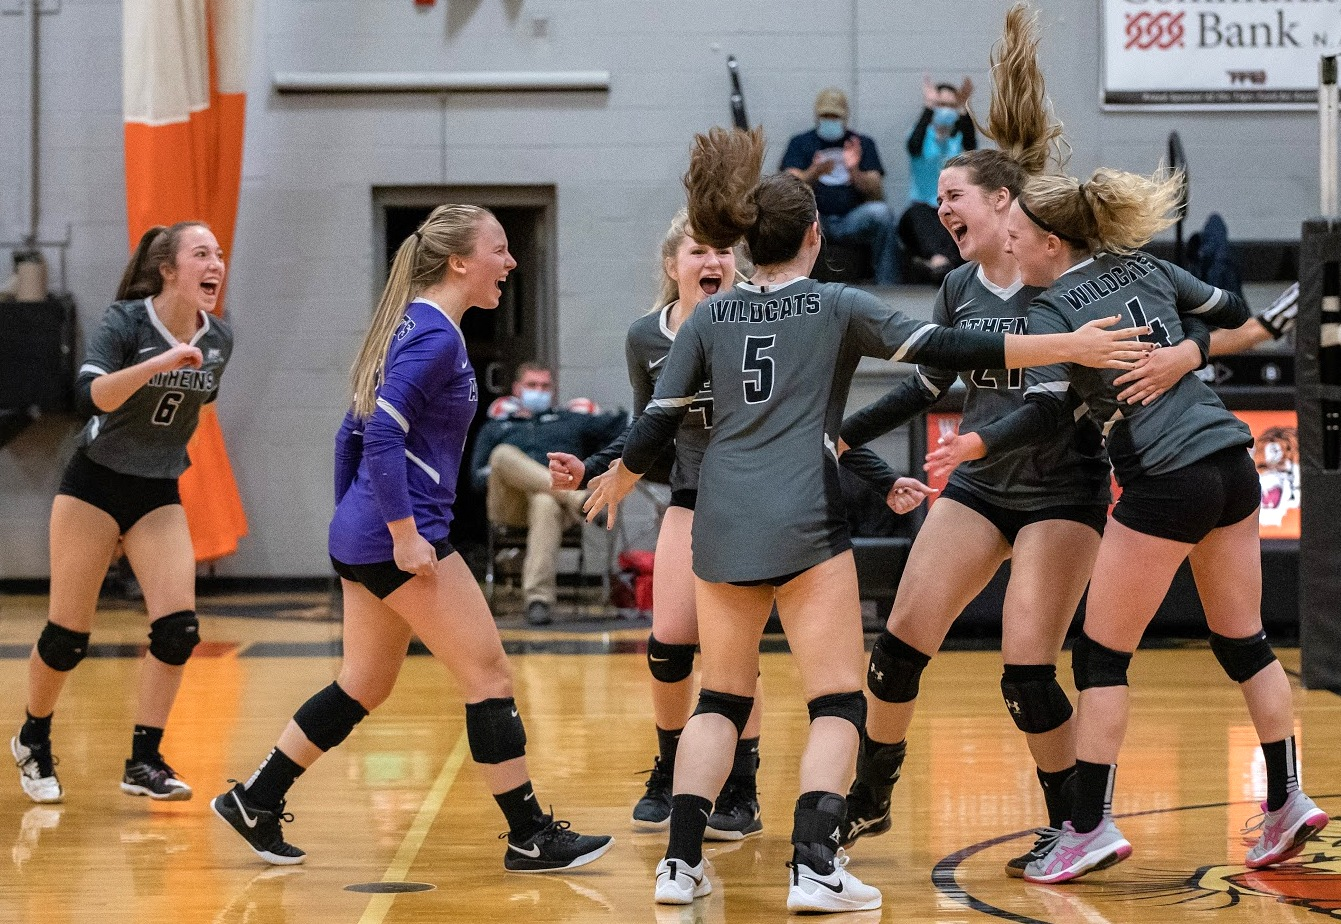 ATHENS SWEEPS TUNKHANNOCK; ADVANCES TO SUB-REGIONAL FINALS